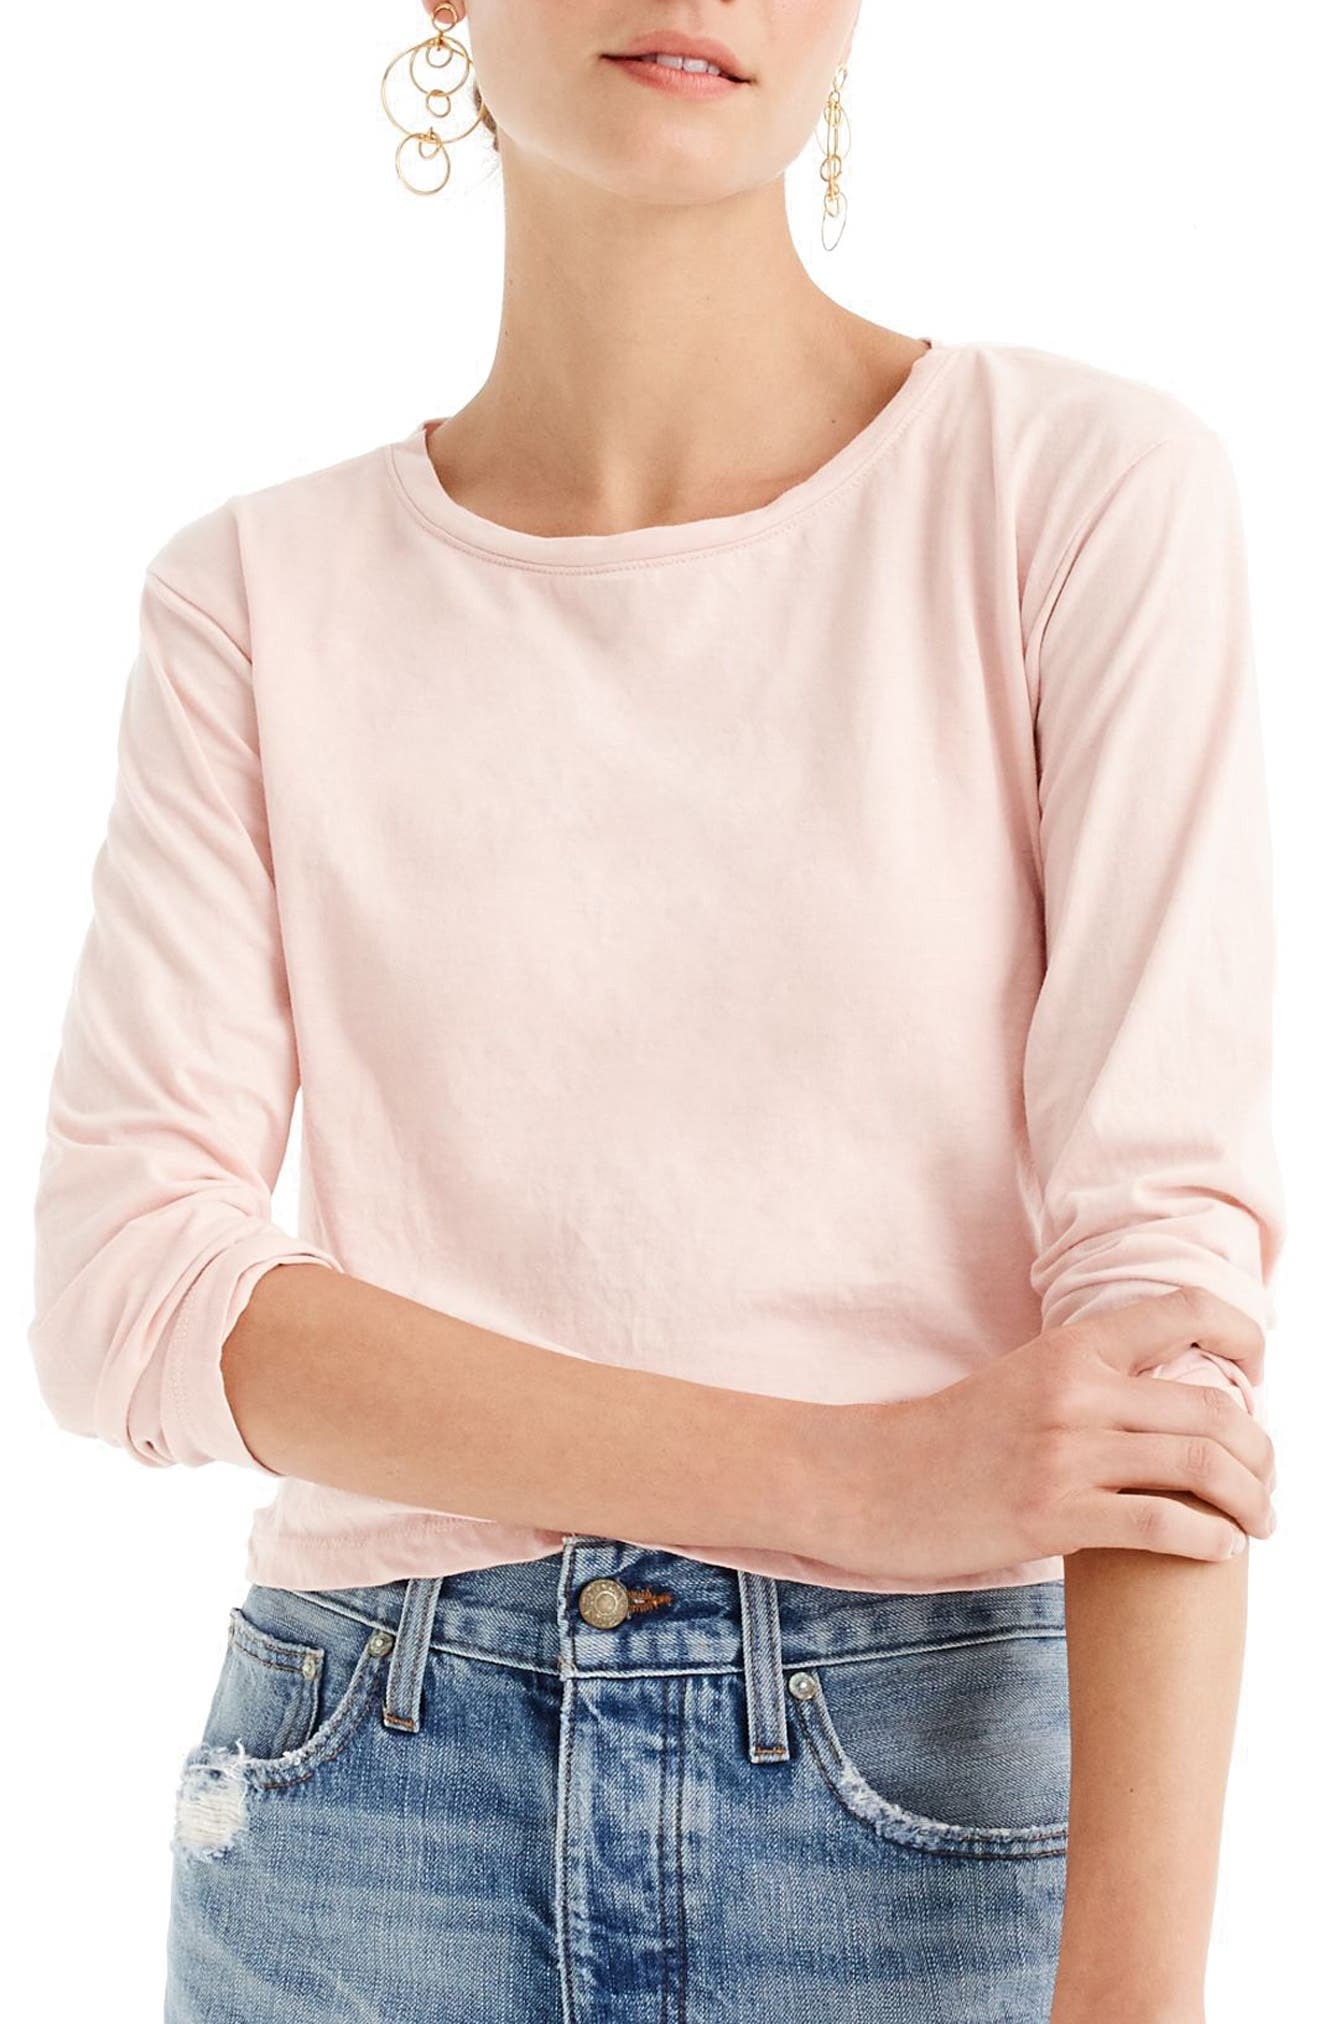 J.Crew Twist Hem Pima Cotton Tee